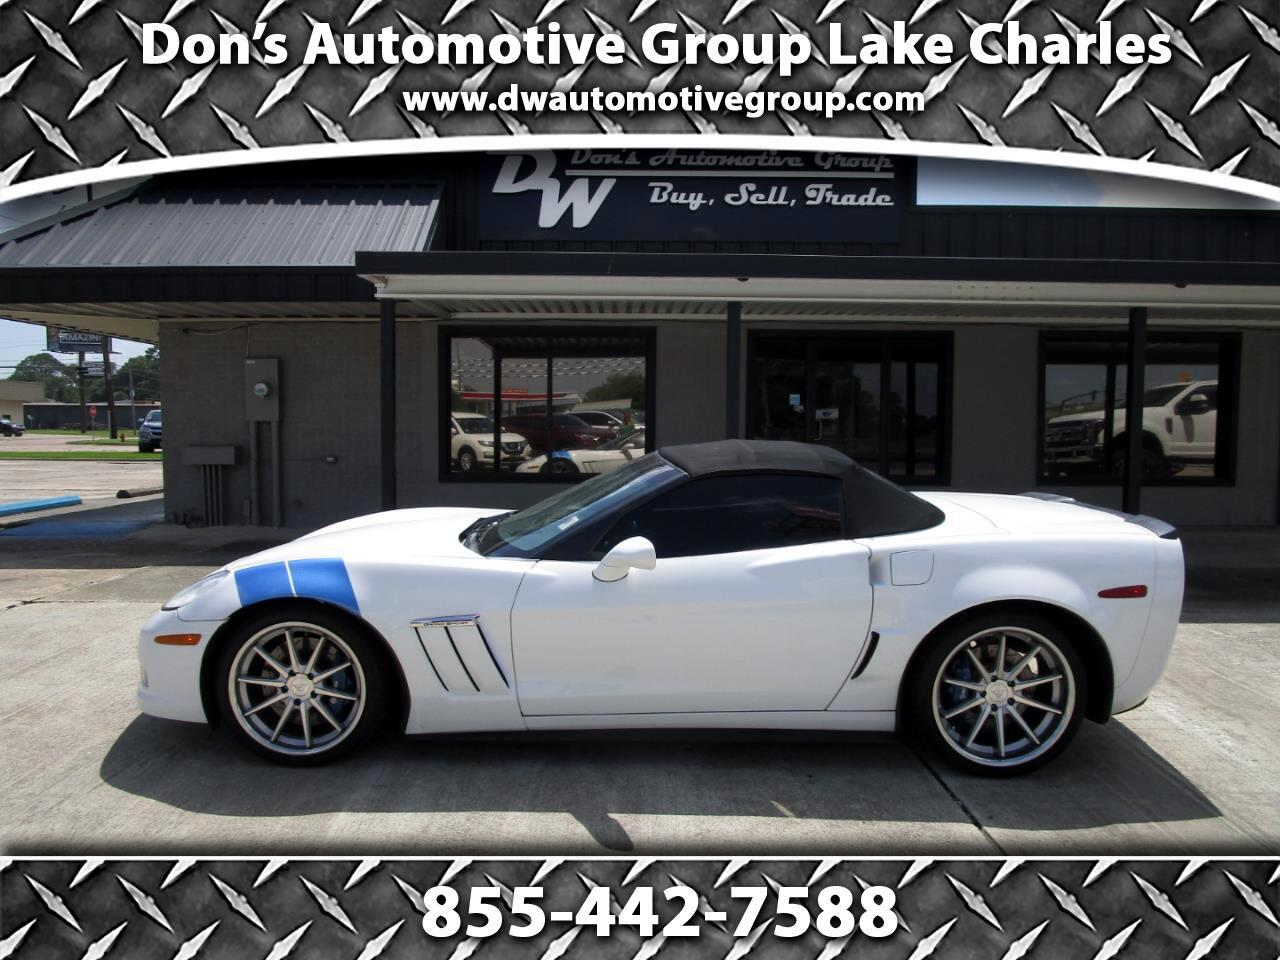 Chevrolet Corvette GS Convertible 3LT 2011